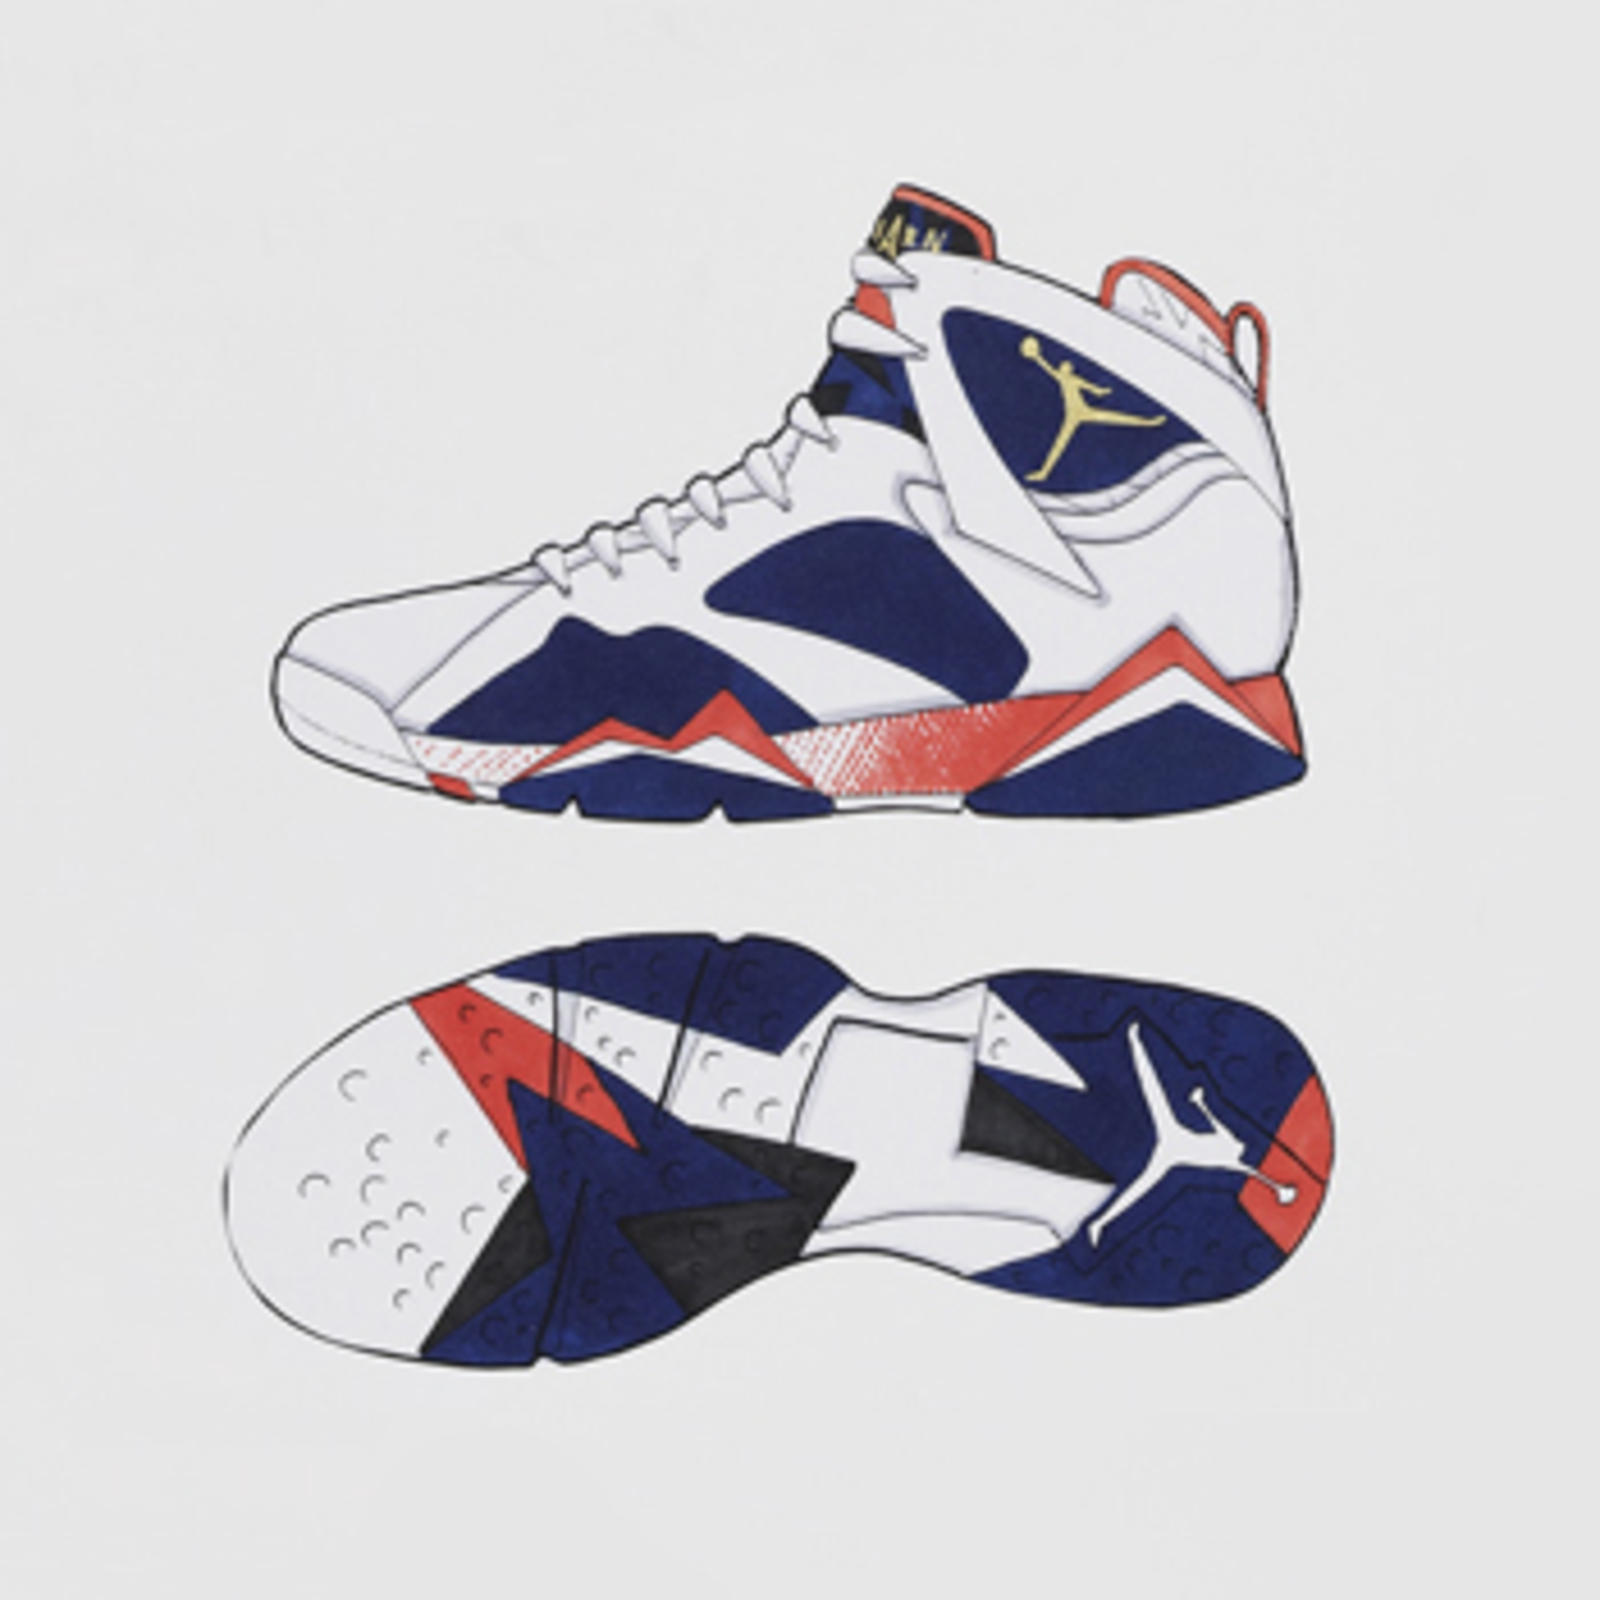 Air-Jordan-7-Alternate-Data-de-lançamento (2)